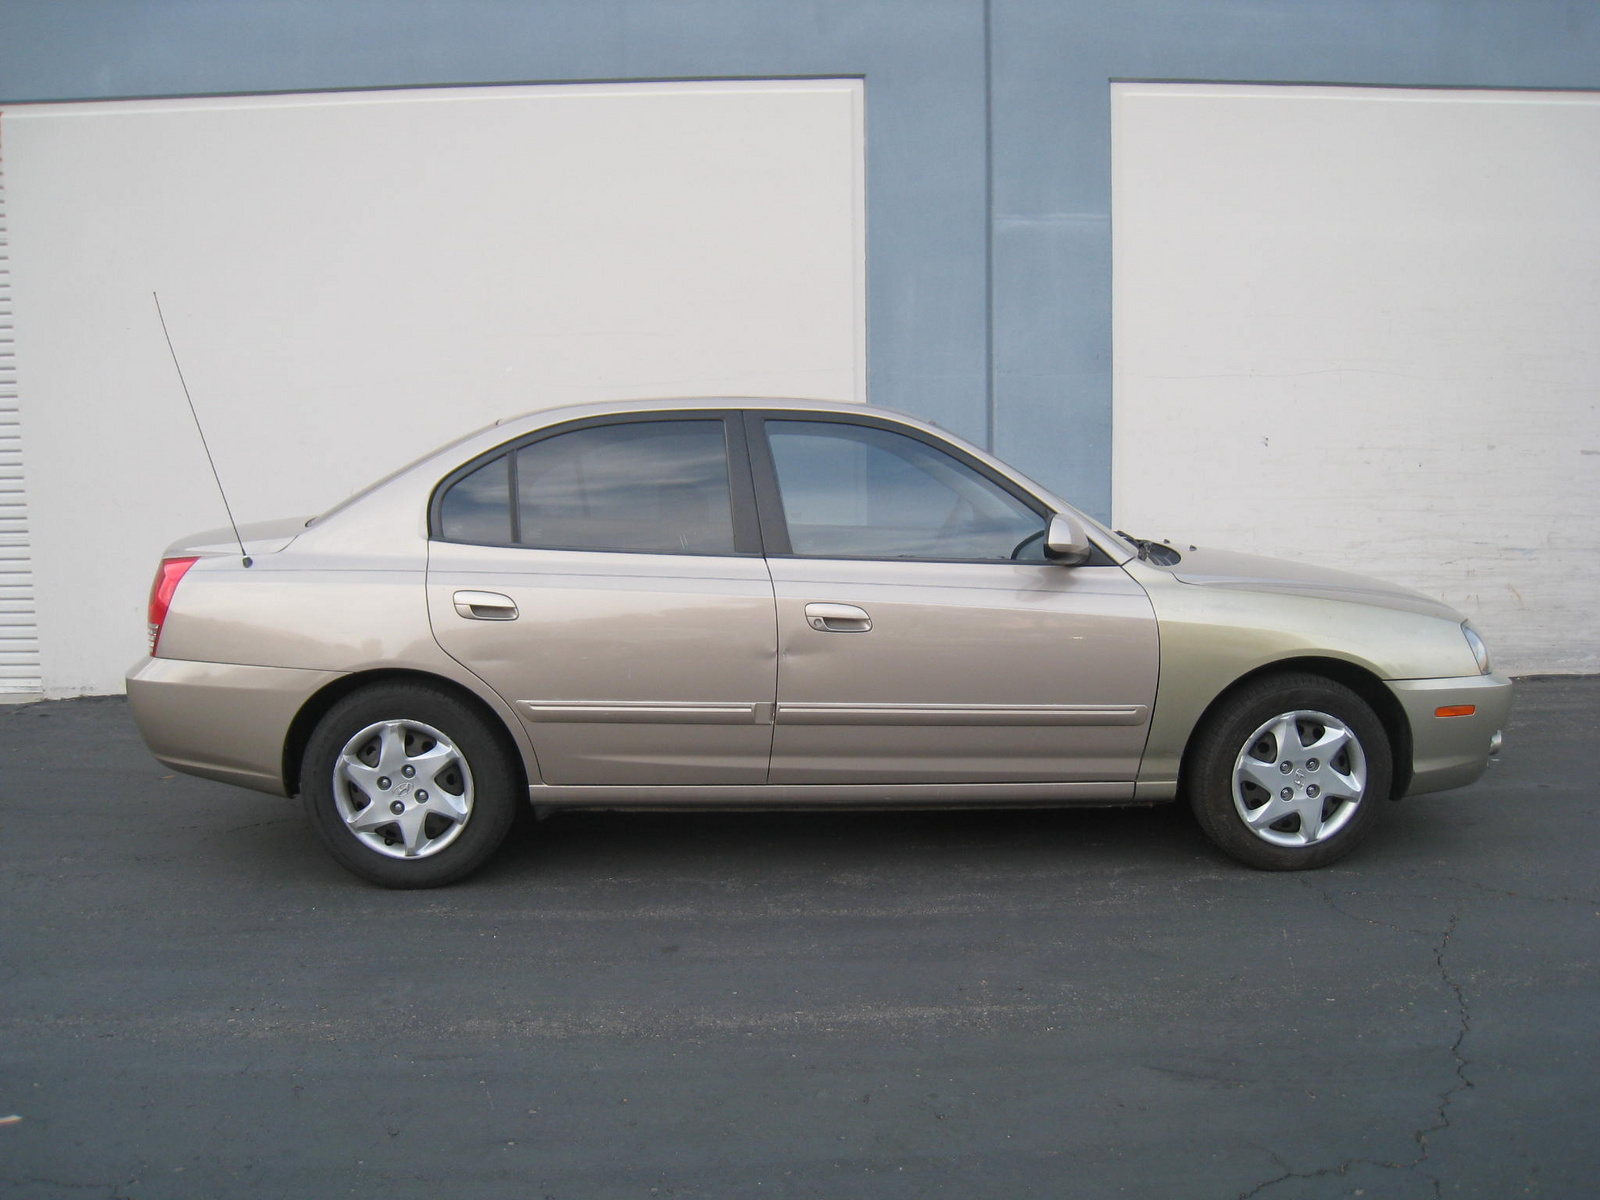 Used 2003 Hyundai Elantra Gt Review Ratings Edmunds